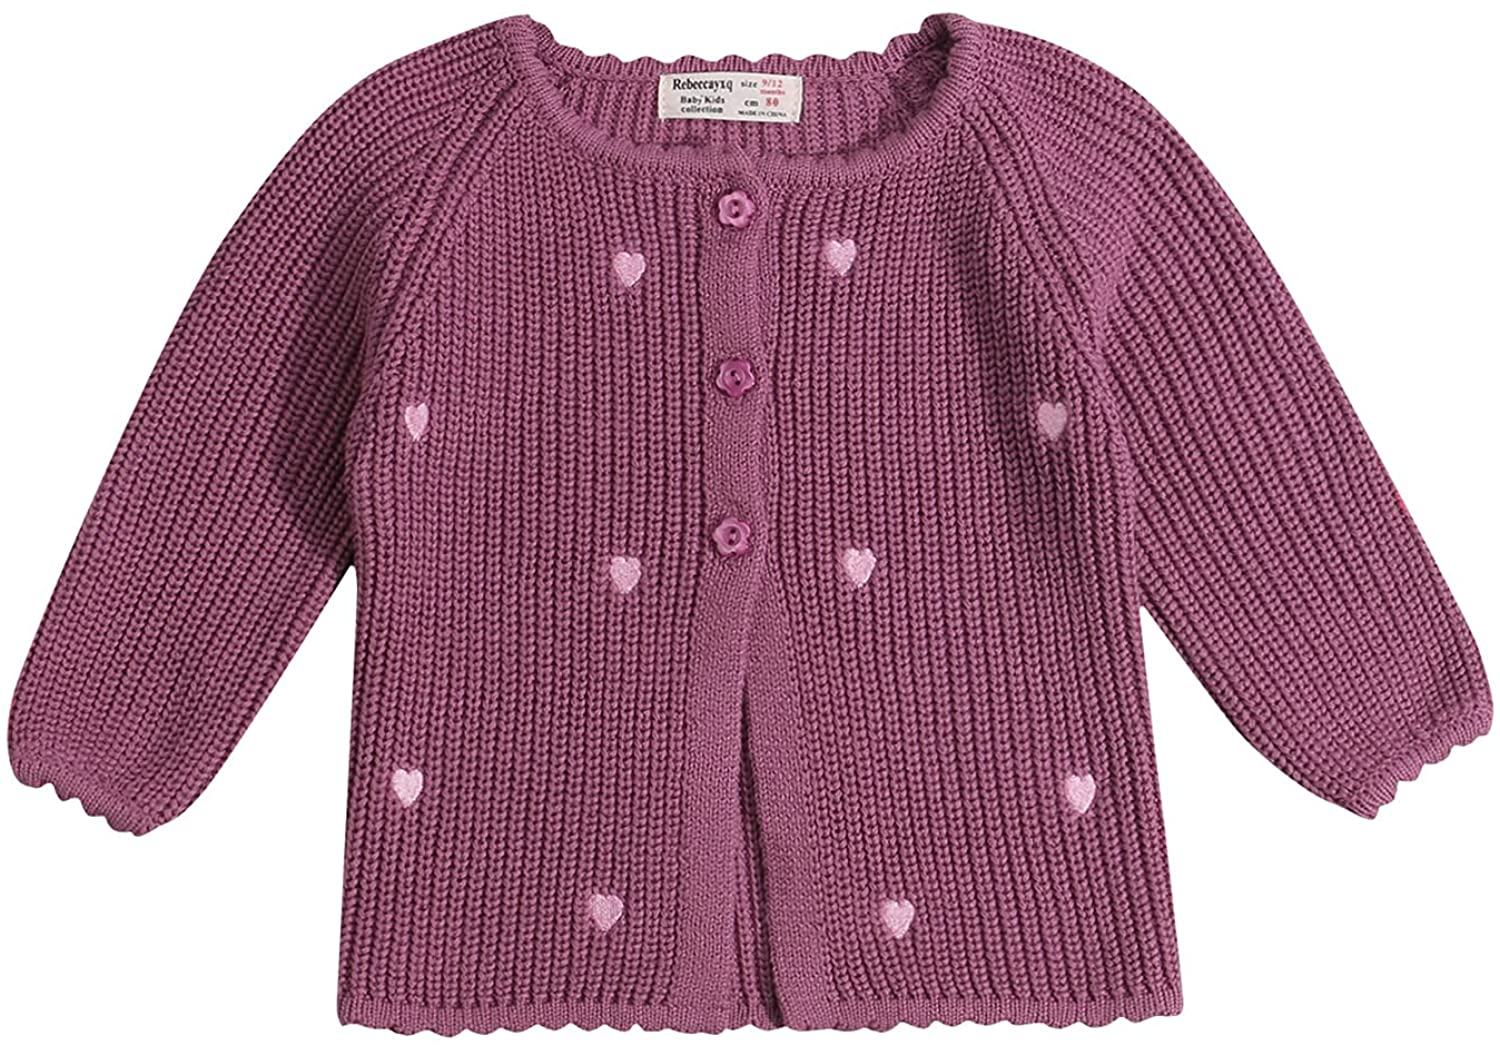 Toddler Baby Girl Fall Winter Large-scale Complete Free Shipping sale Sweater Kids Printed Knitted Heart